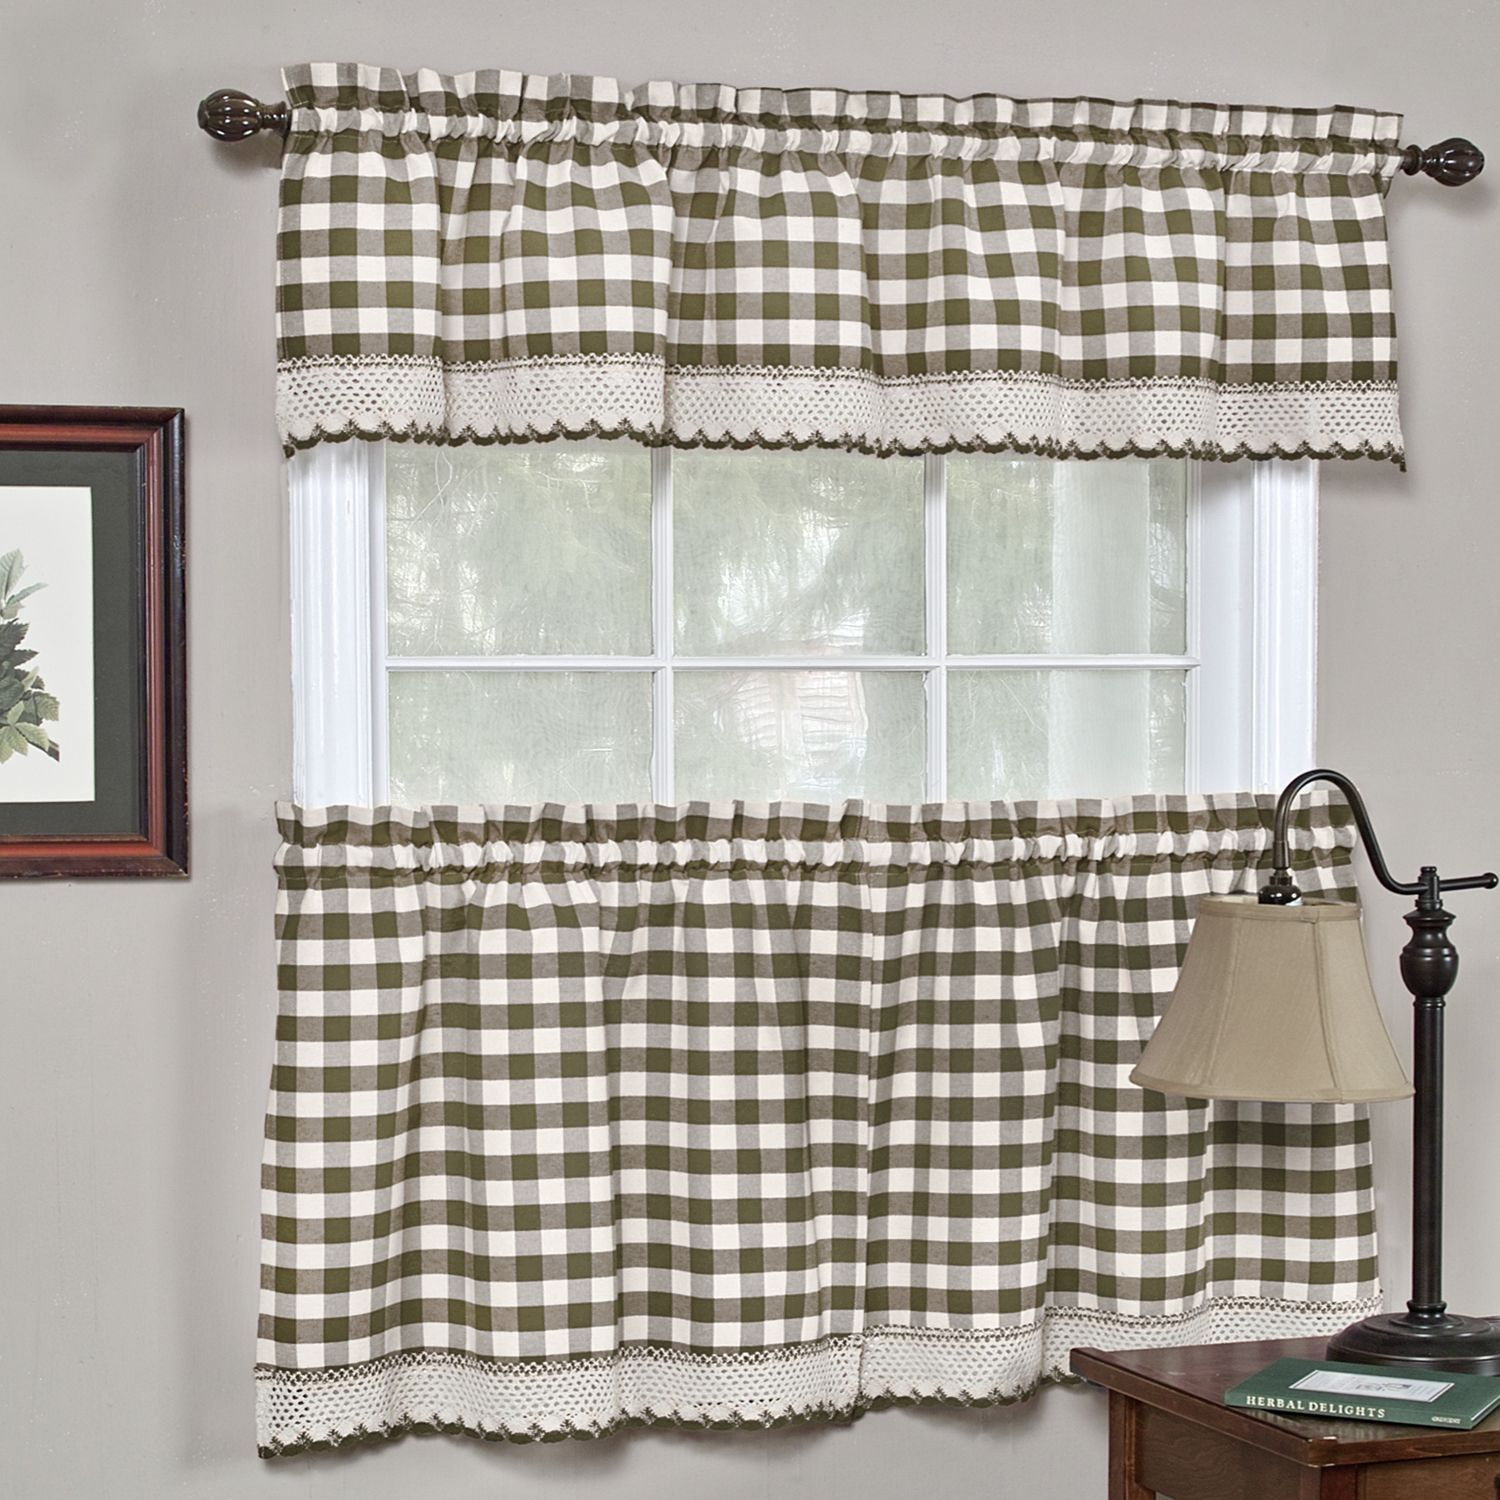 Classic Buffalo Check Kitchen Curtains (24 Tier Pair, Taupe with Barnyard Buffalo Check Rooster Window Valances (Image 13 of 20)